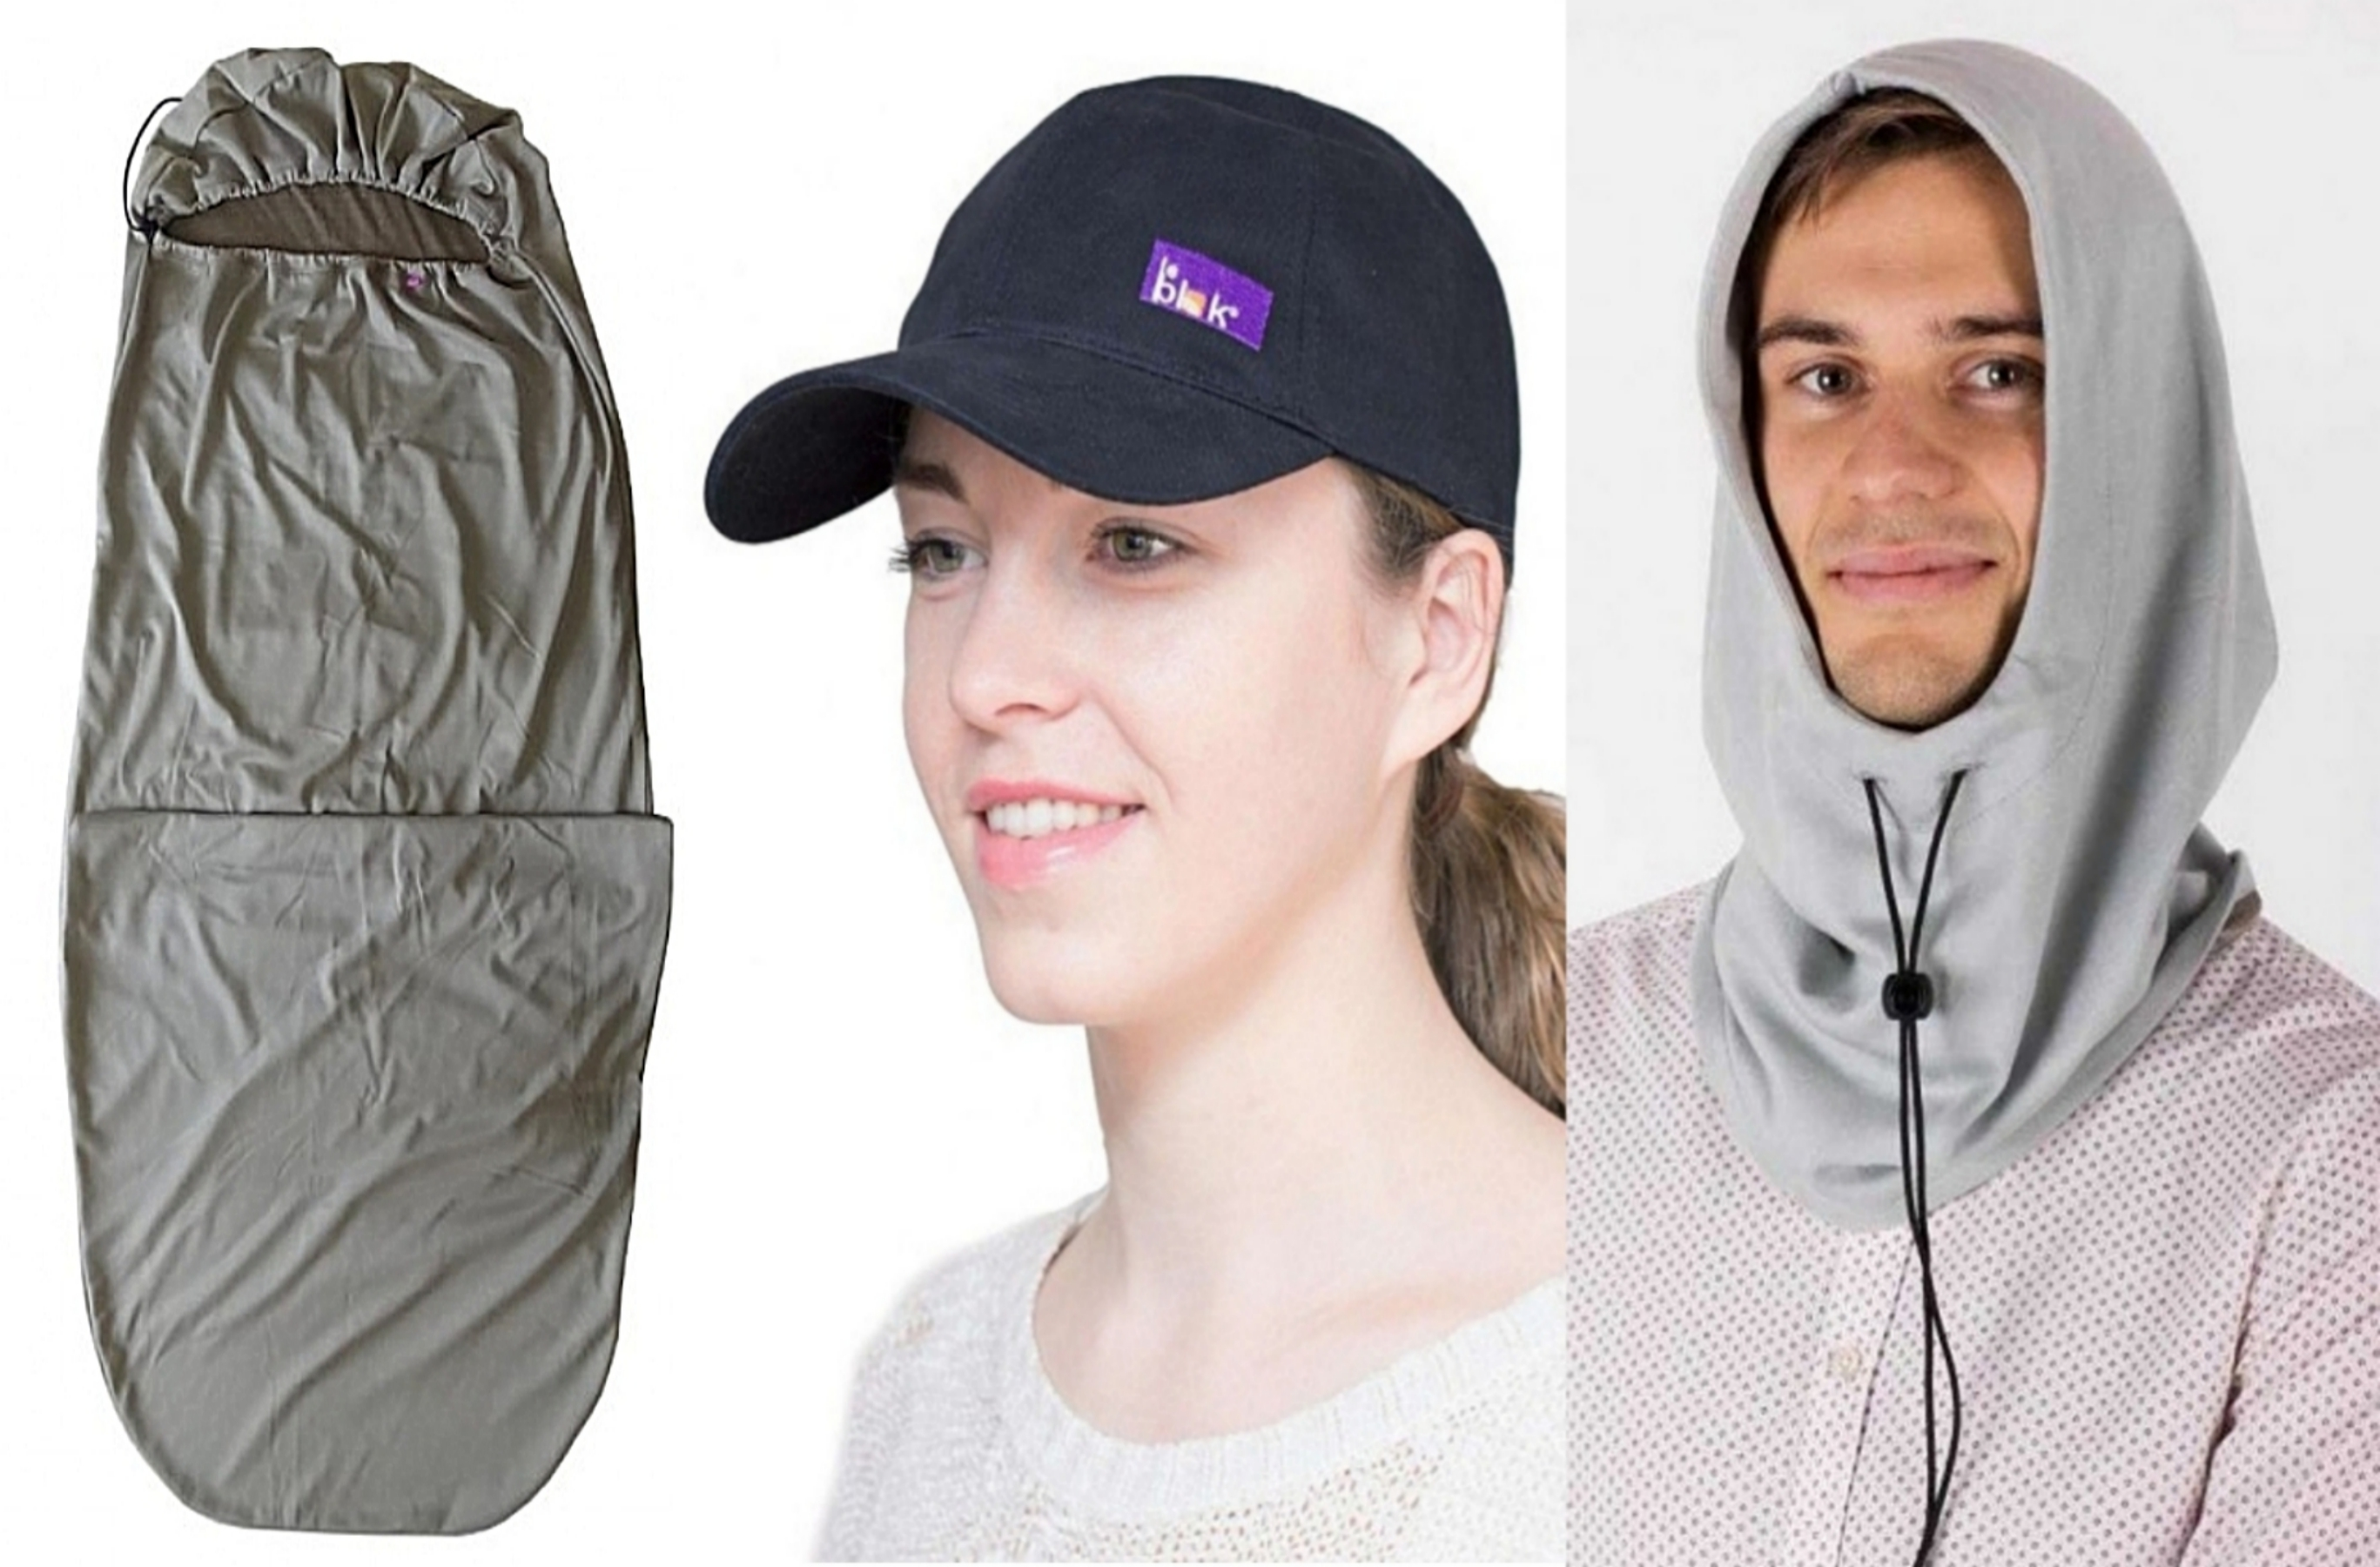 RF shielding clothing